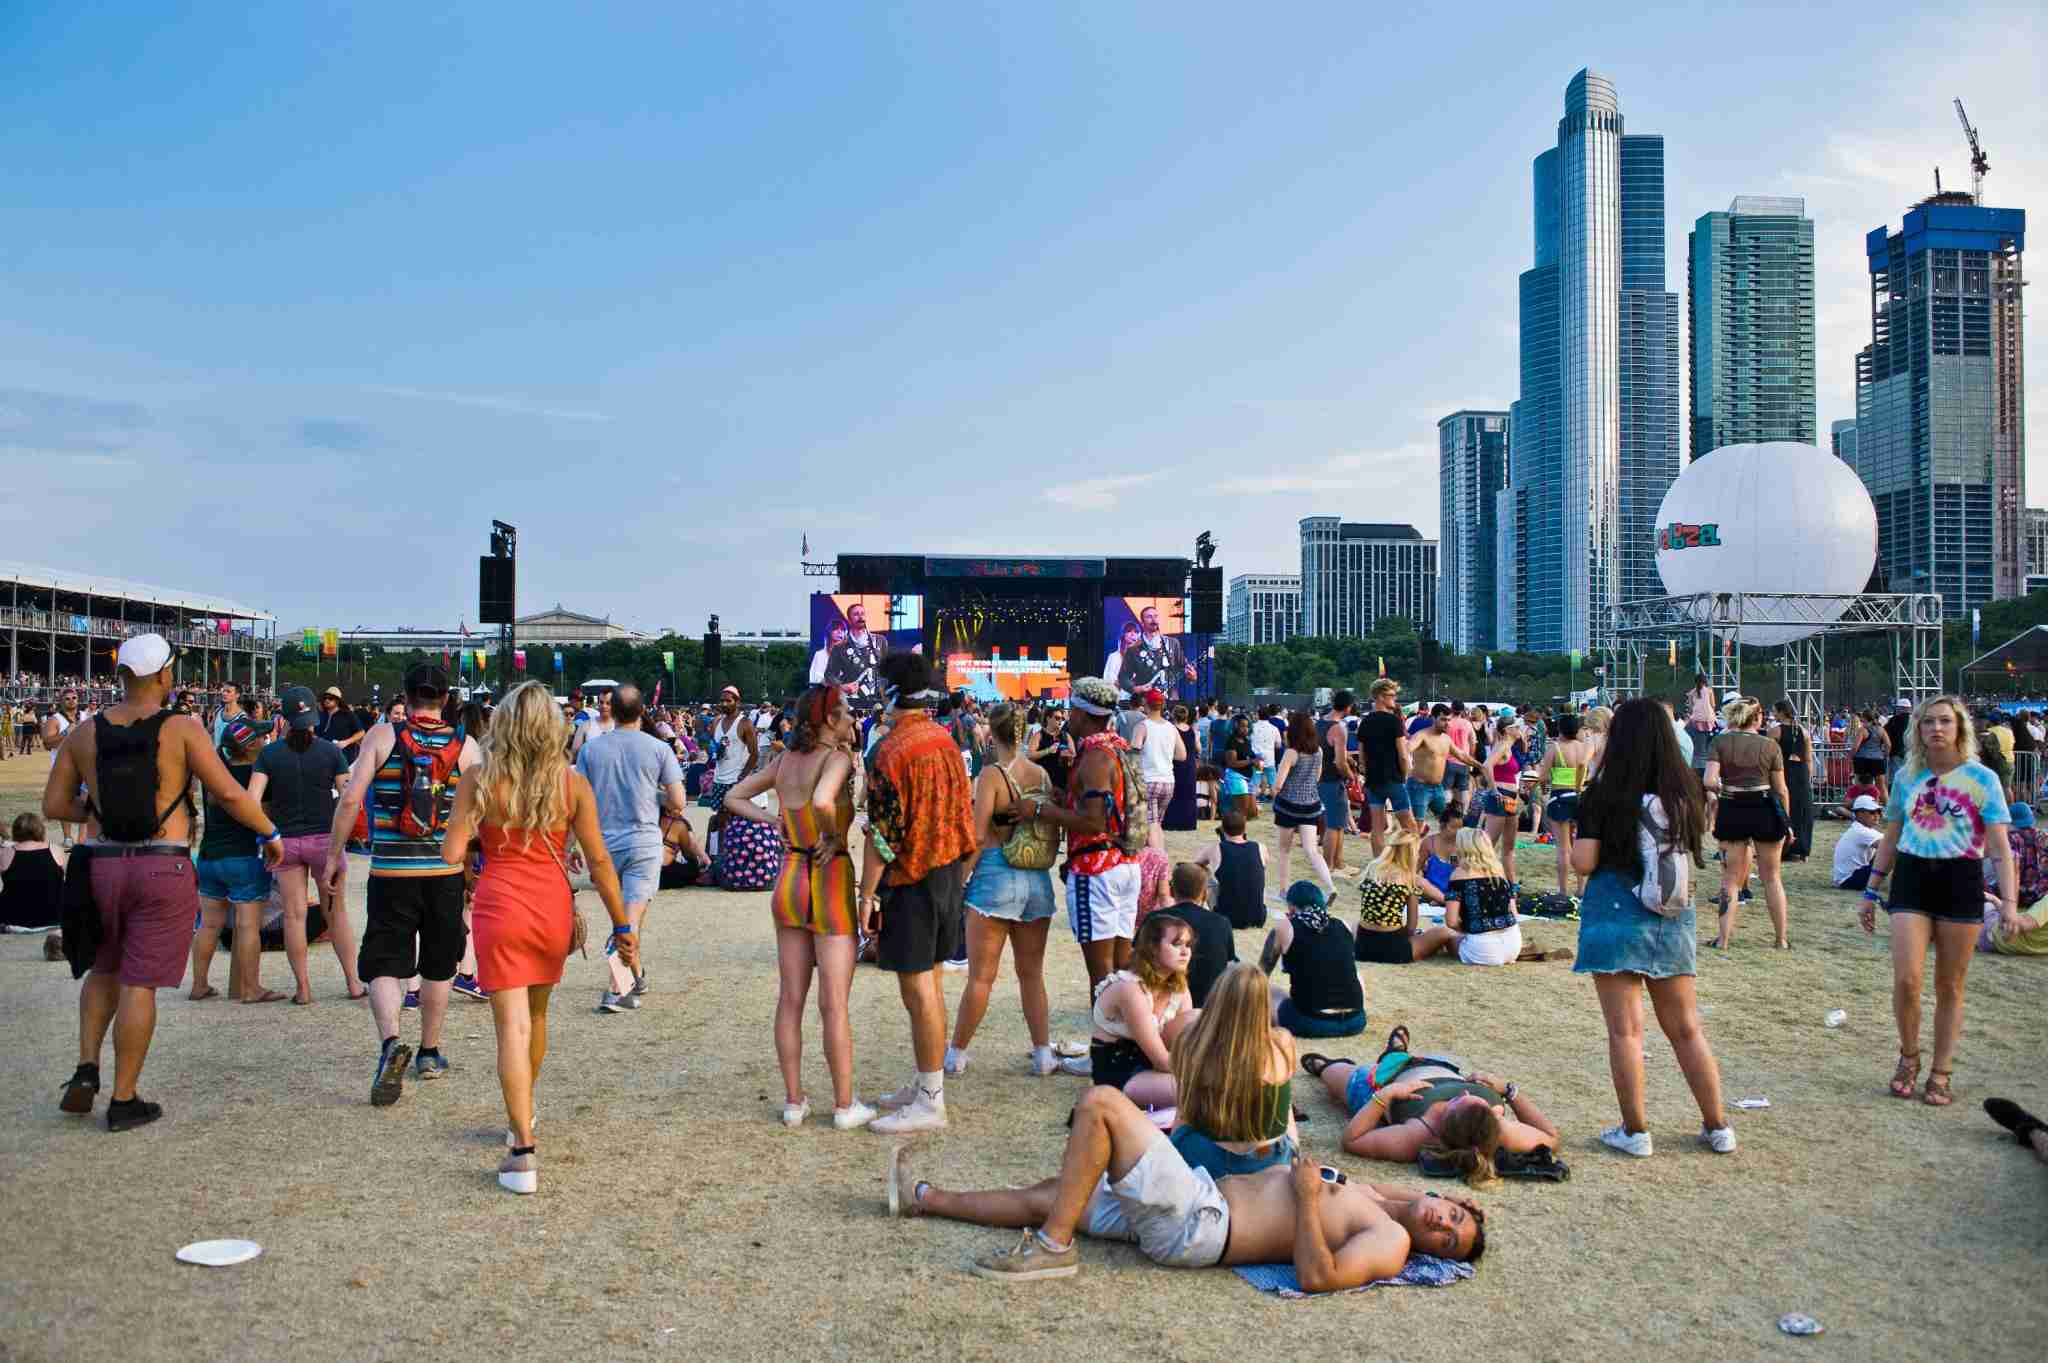 Festival Goers at Lollapalooza 2018 (Photo by Timothy Hiatt/WireImage)